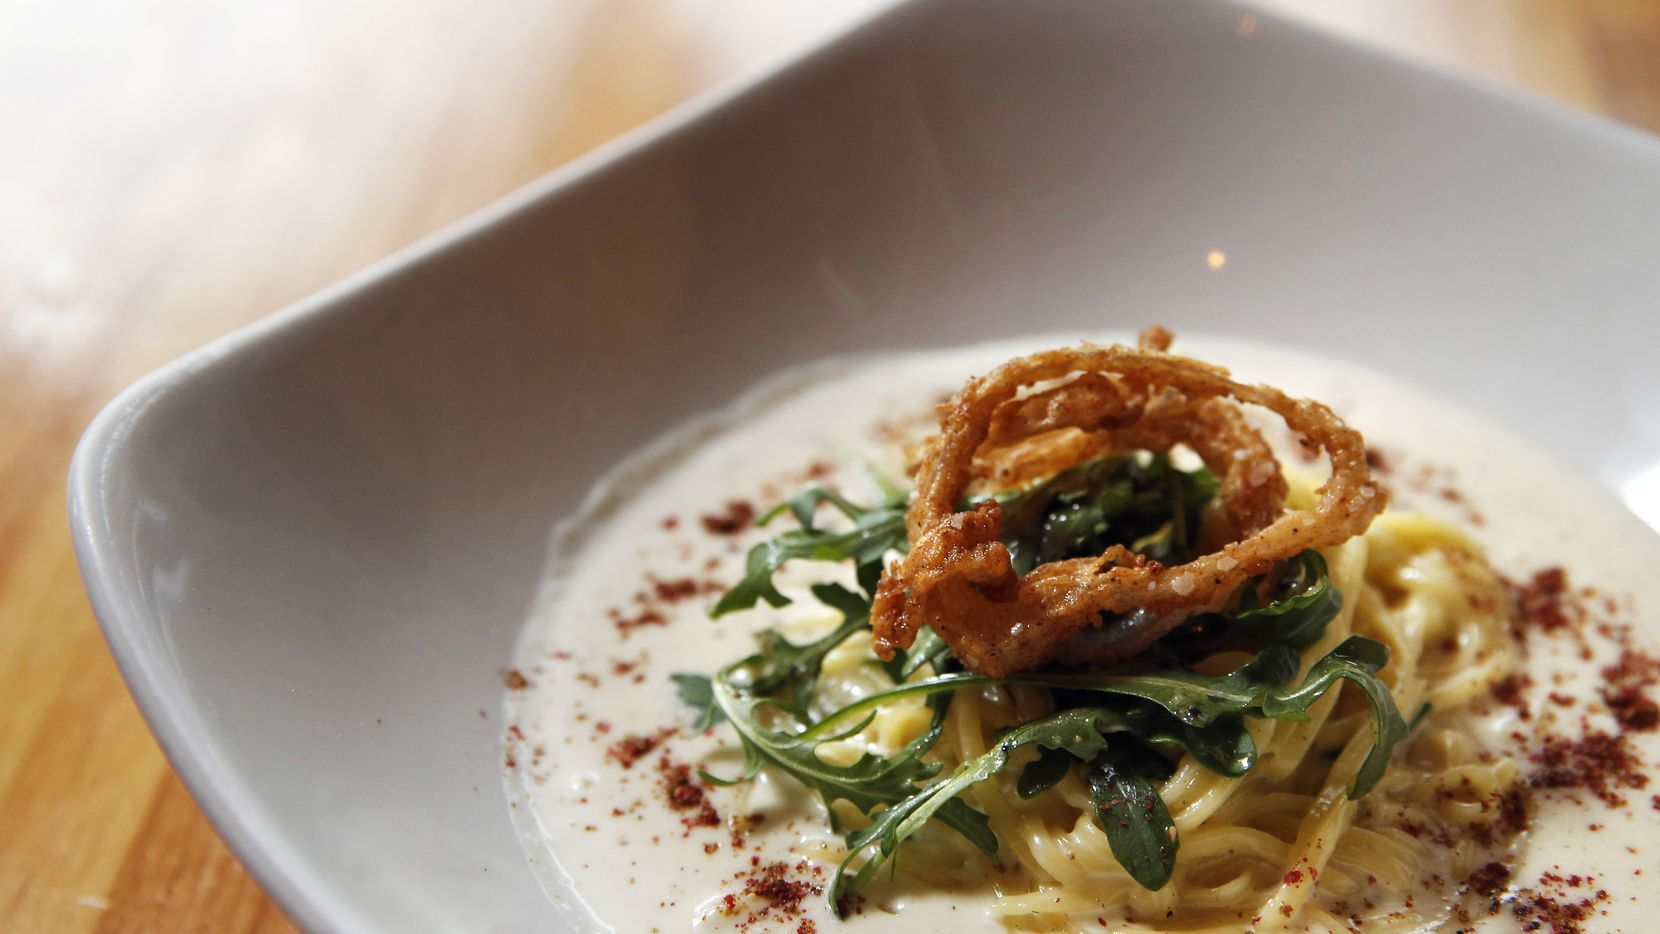 Cacio e pepe is one of the most popular dishes at Rye in McKinney. The owners will open a second location in Dallas in spring 2021.